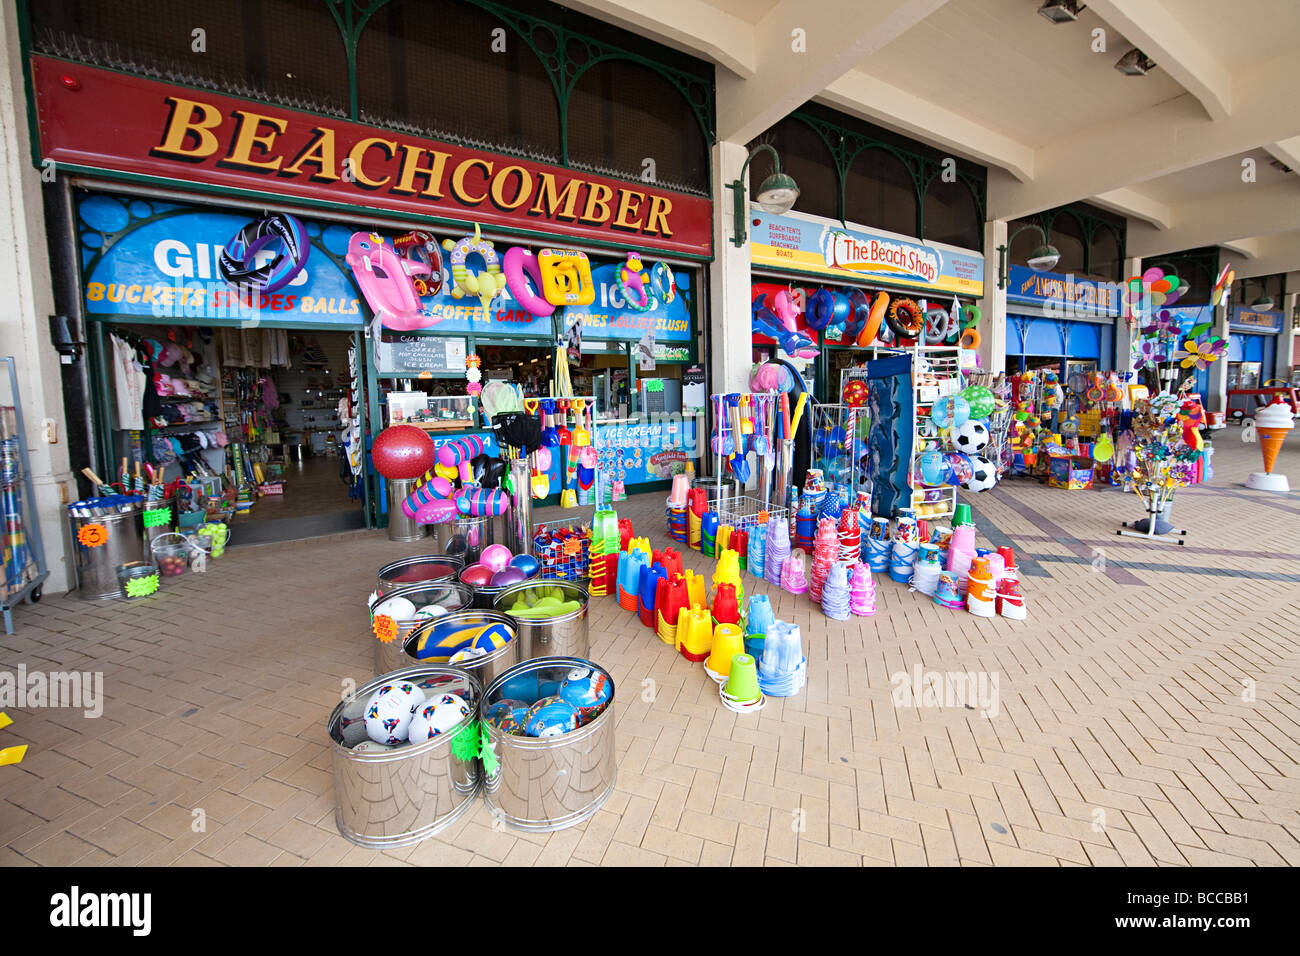 Seaside toys and souvenirs on sale at beach front shops Barry island Wales UK Stock Photo